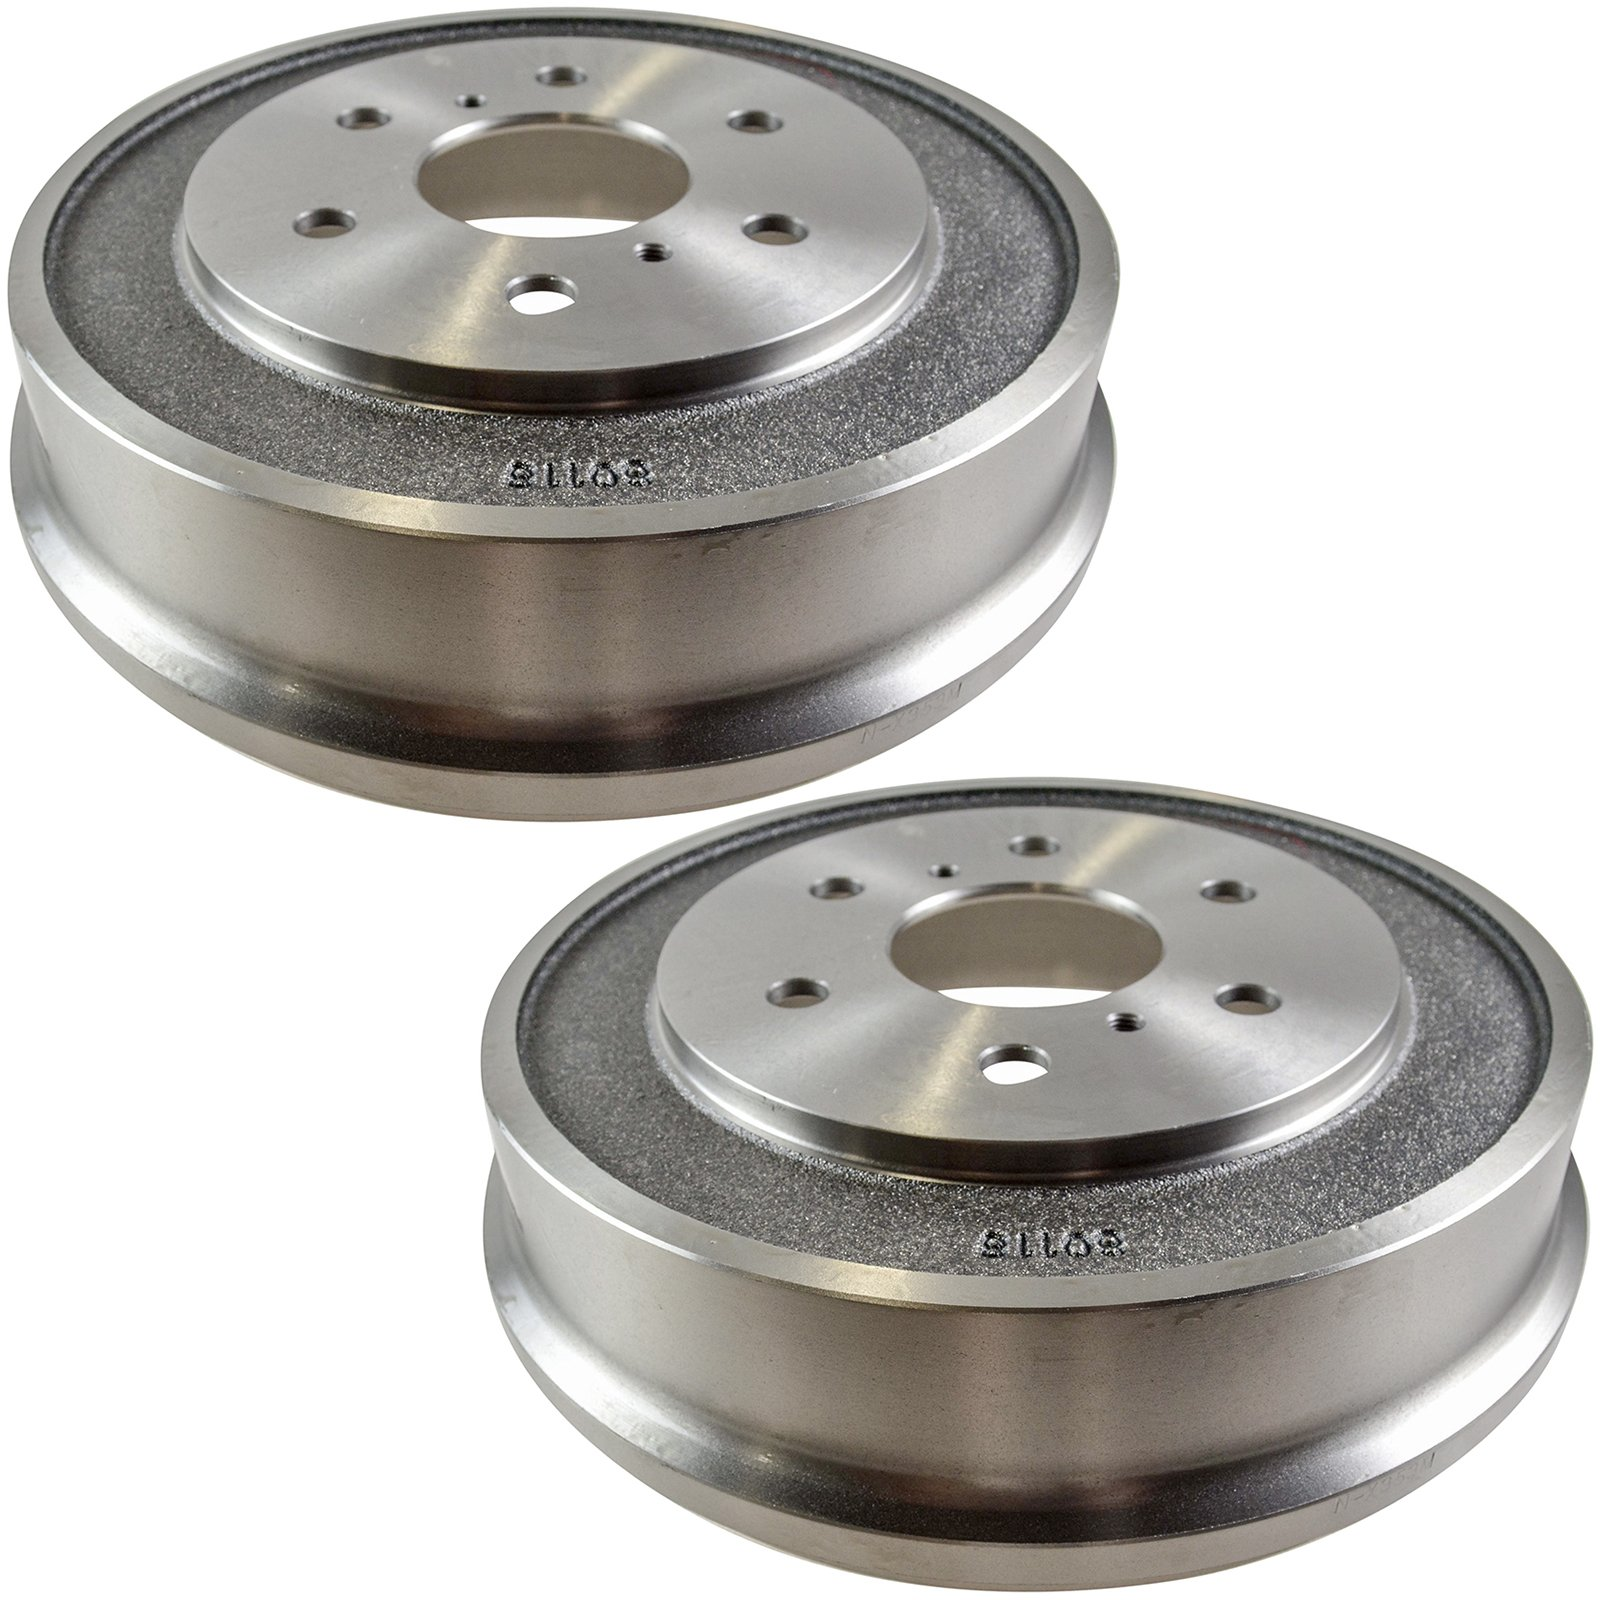 Rear Drum Brake Pair Set for Chevy Silverado 1500 Silverado 1500 Classic GMC Sierra 1500 Sierra 1500 Classic